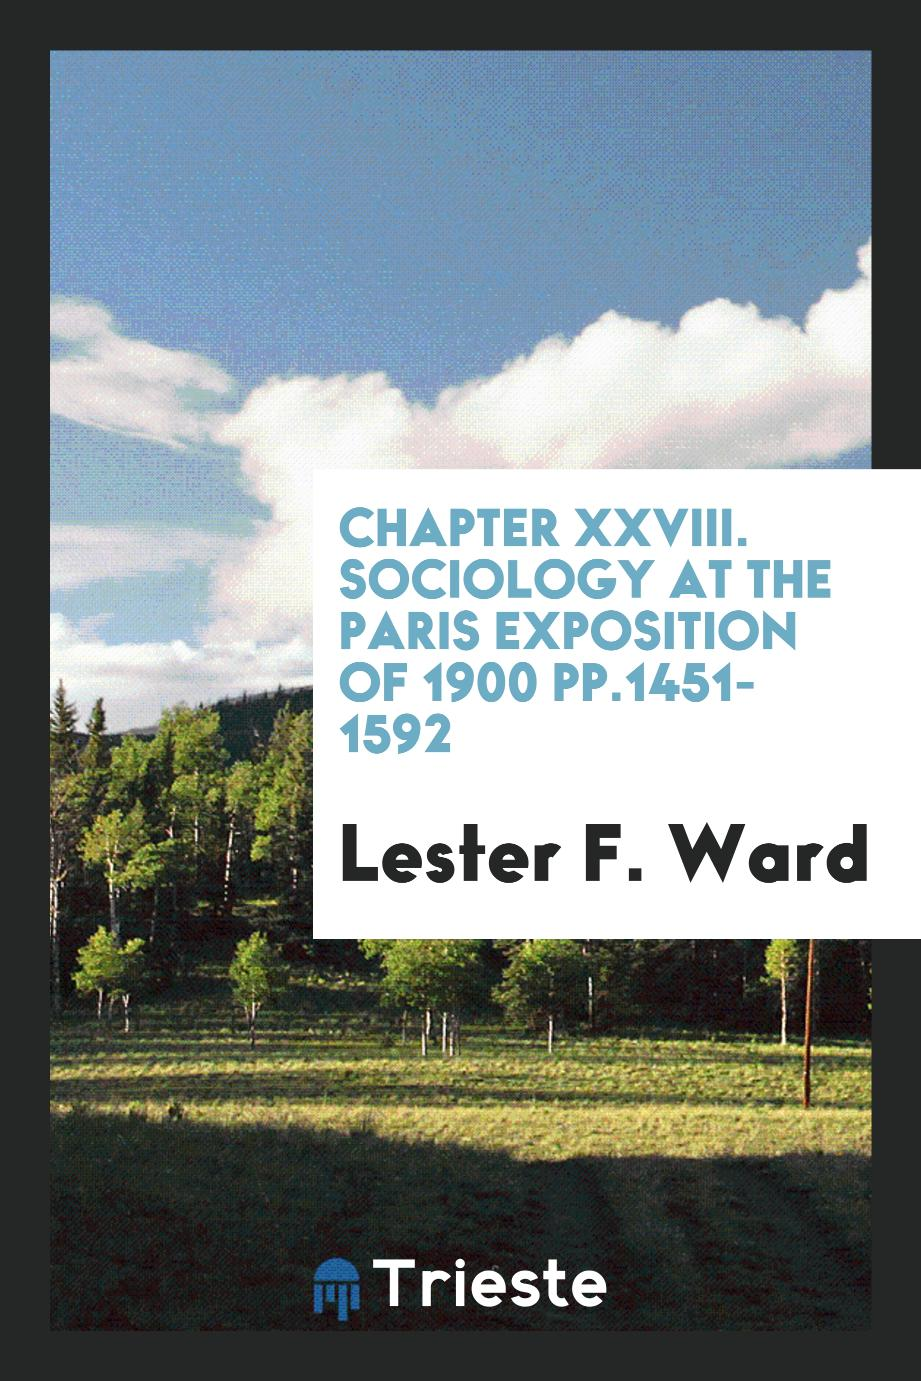 Chapter XXVIII. Sociology at the Paris Exposition of 1900 pp.1451-1592